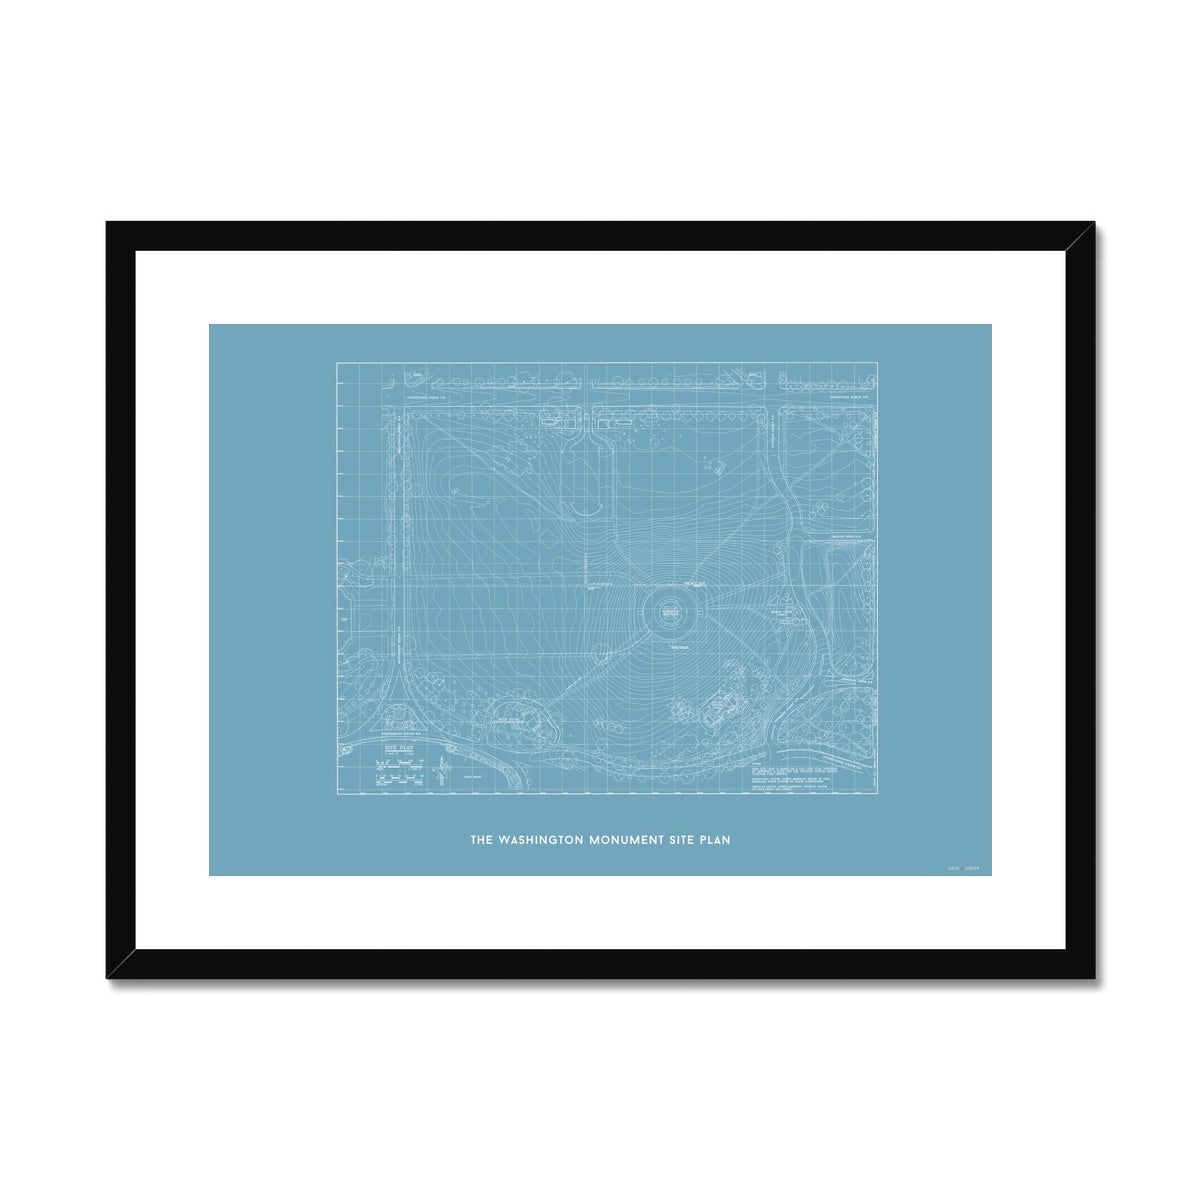 The Washington Monument Site Plan - Blue -  Framed & Mounted Print